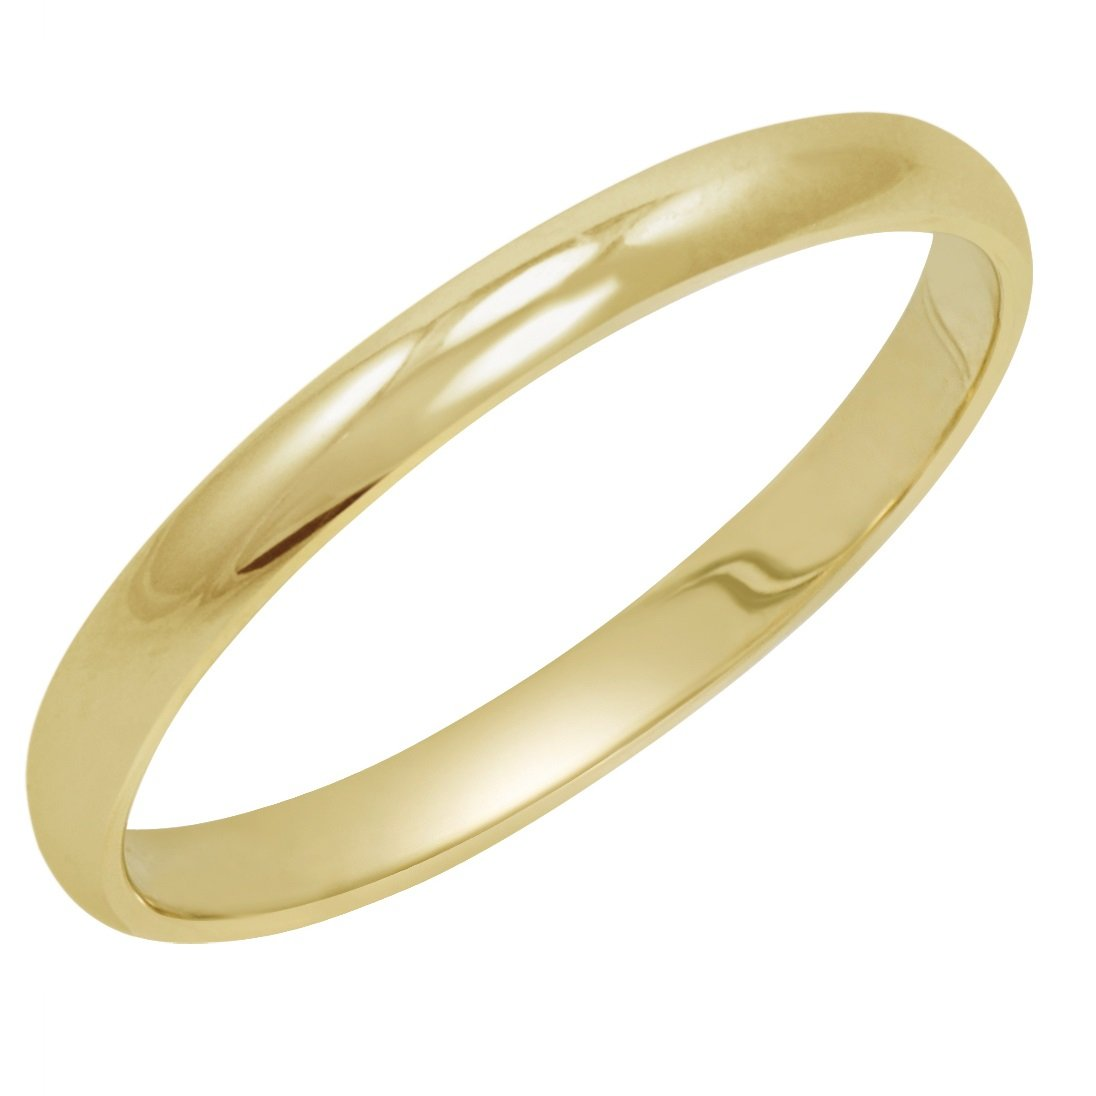 Women's 14K Yellow Gold 2mm Traditional Plain Wedding Band (Available Ring Sizes 4-8 1/2) Size 7 by Amanda Rose Collection